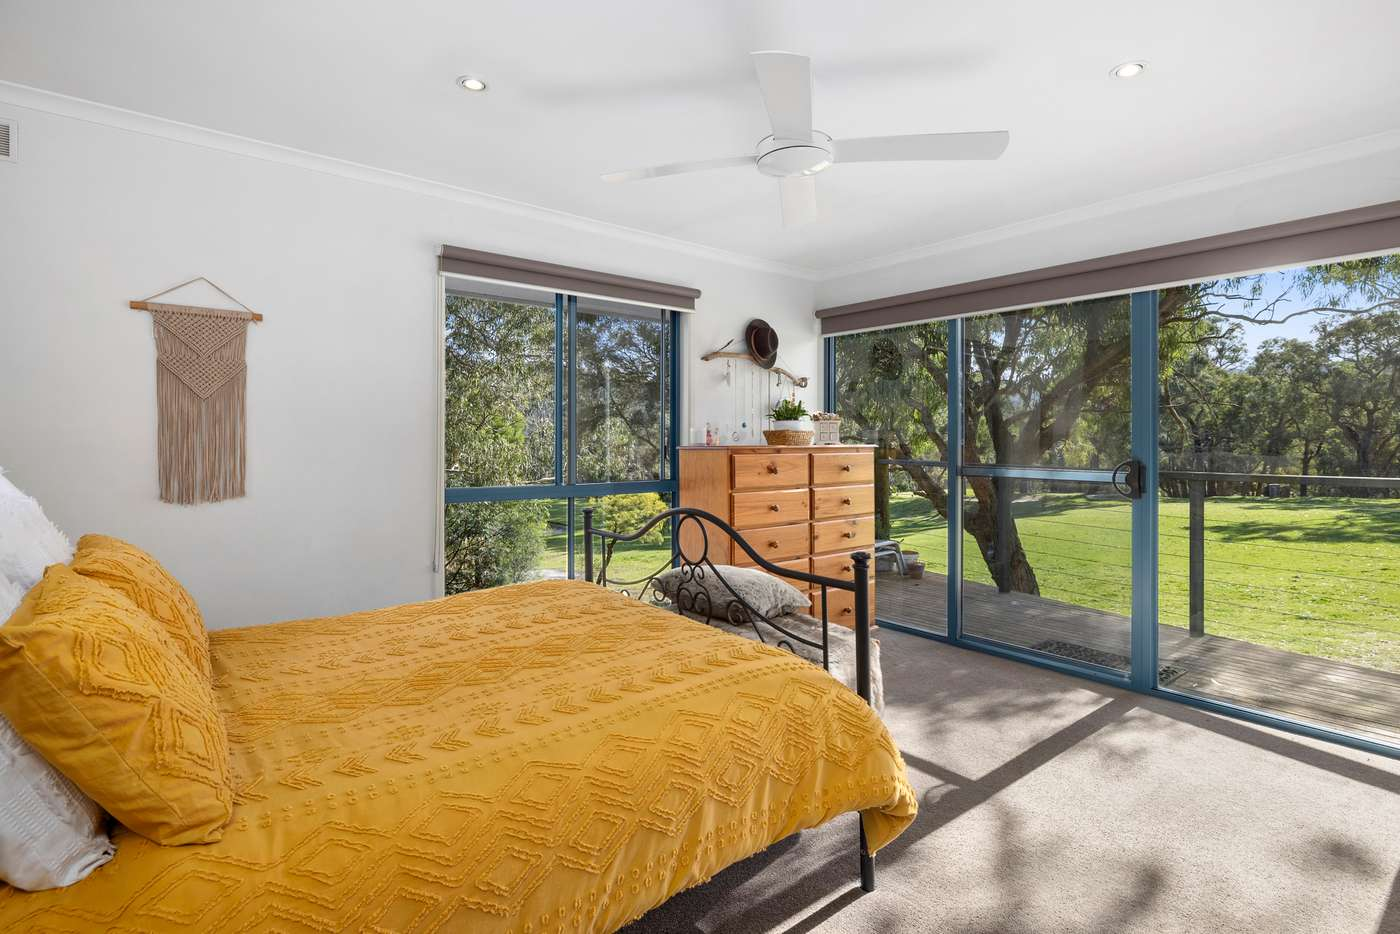 Fifth view of Homely house listing, 2/12 Lascelles Terrace, Lorne VIC 3232